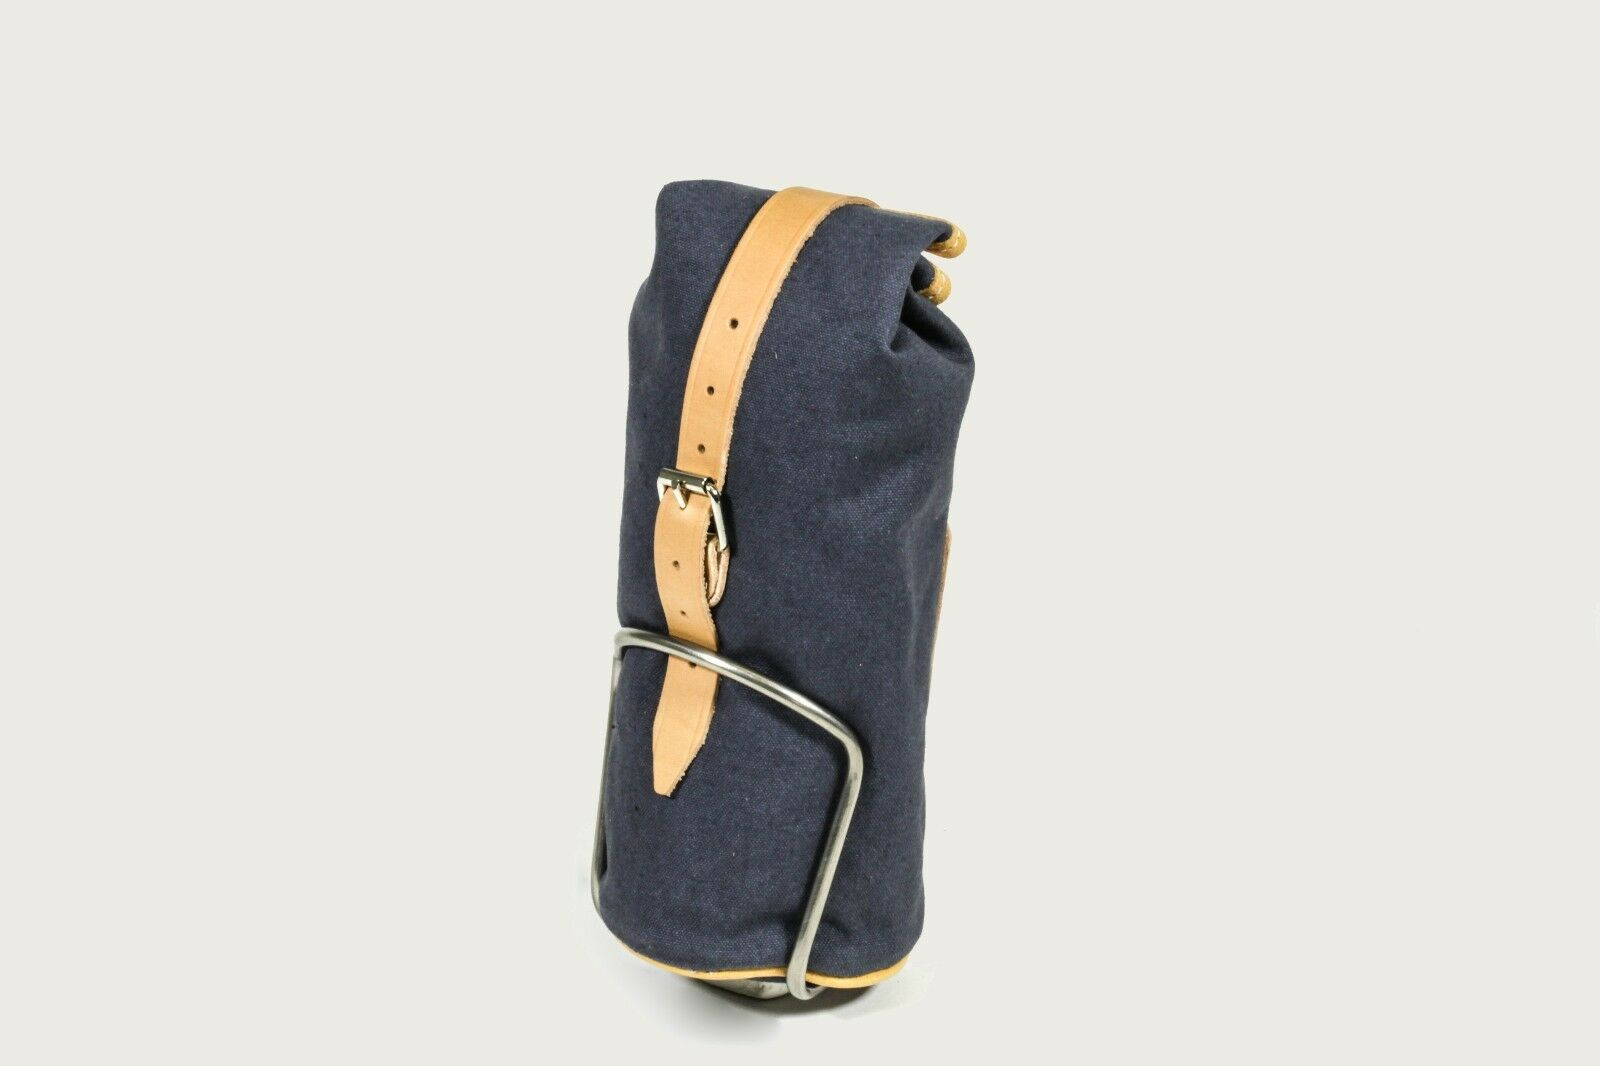 GILLES Berthoud Canvas & Leather bicicletta bottle cage Tool BagSaddle Bag GB116